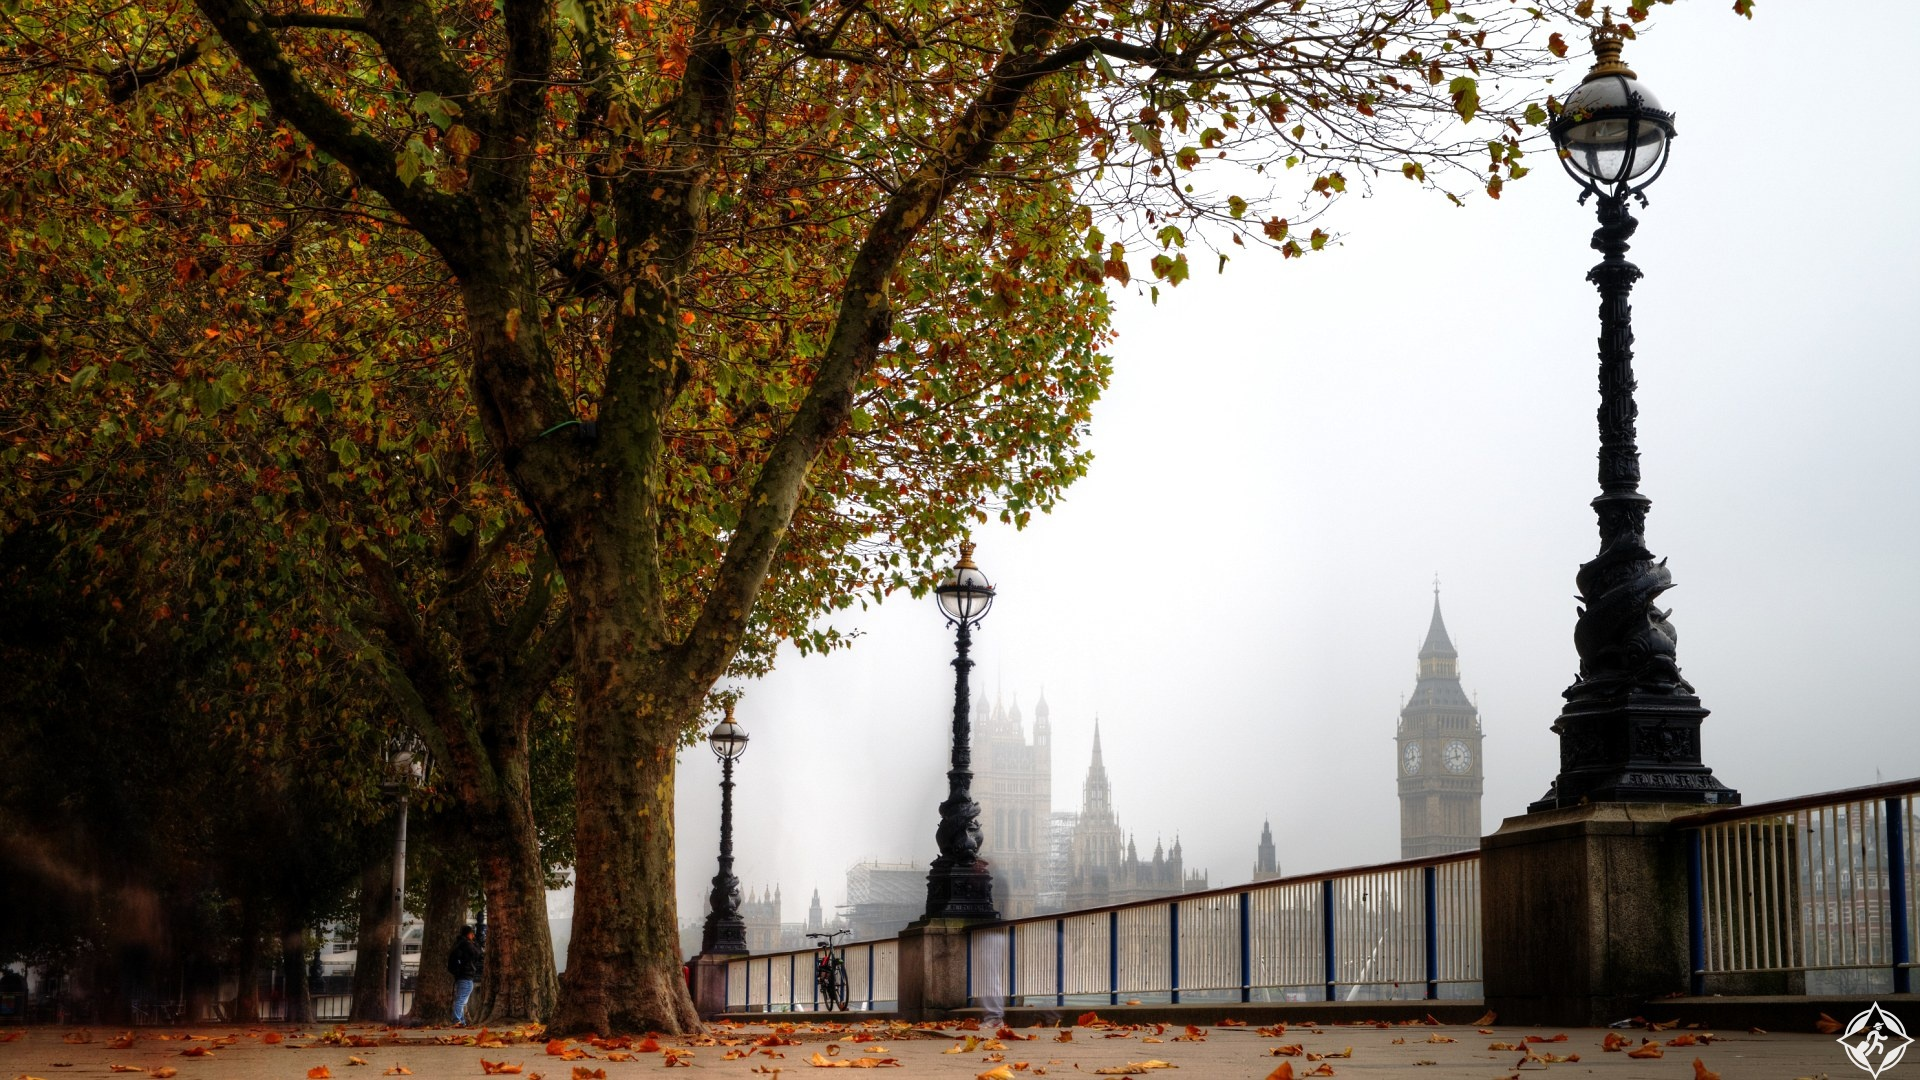 London Southbank in foggy autumn with Big Ben view